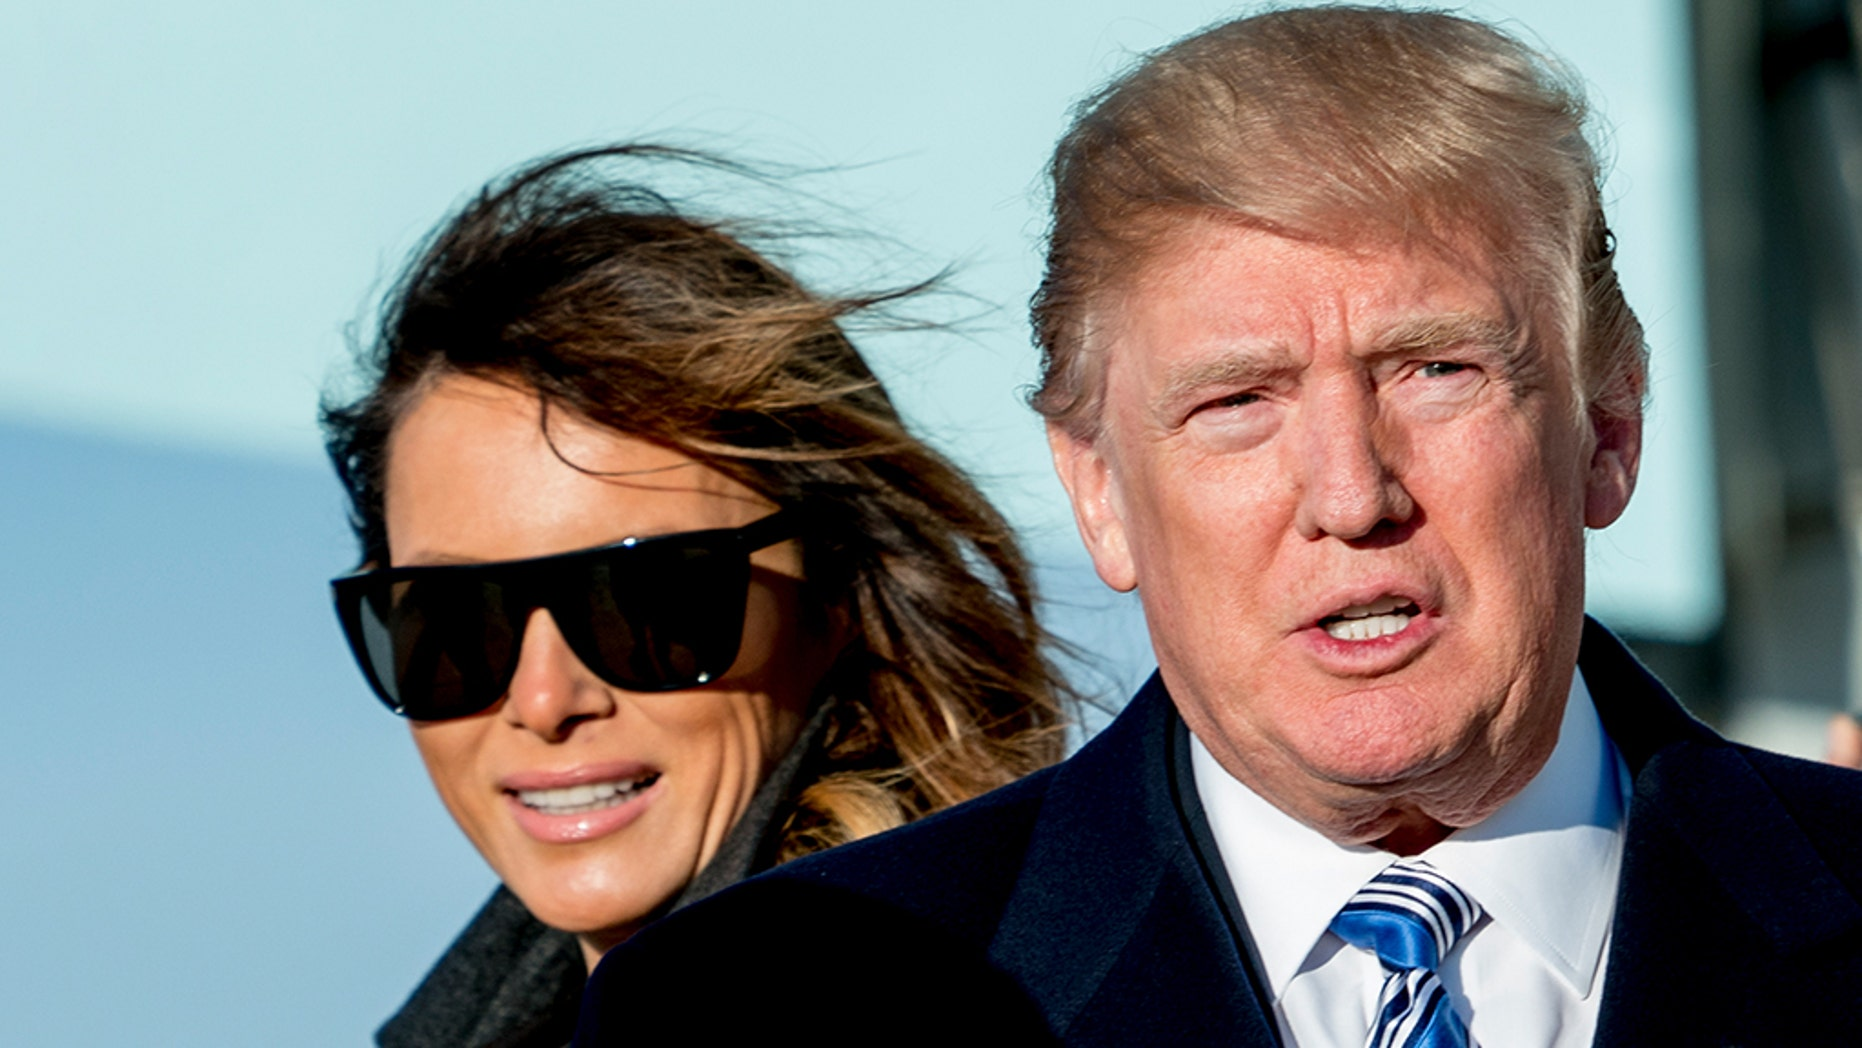 President Trump and first lady Melania arrive at Andrews Air Force Base, Md., Saturday. (AP Photo/Andrew Harnik)